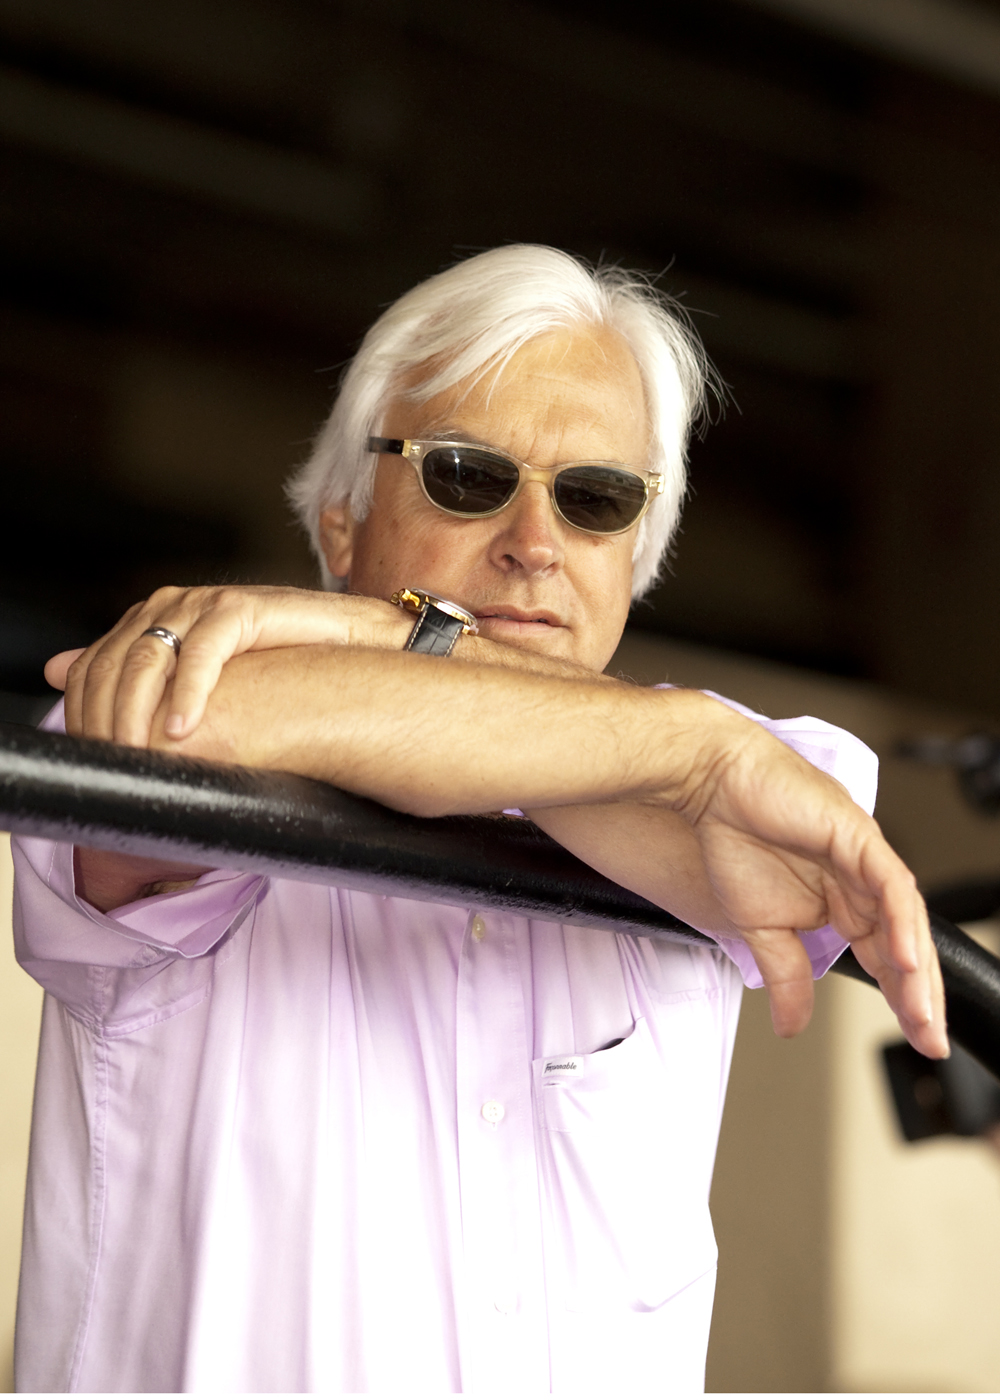 In this photo provided by Benoit Photo, trainer Bob Baffert watches as Triple Crown winner American Pharoah works Tuesday morning, July 28, 2015,  at Del Mar Race Track in Del Mar, Calif.  (Benoit Photo via AP)